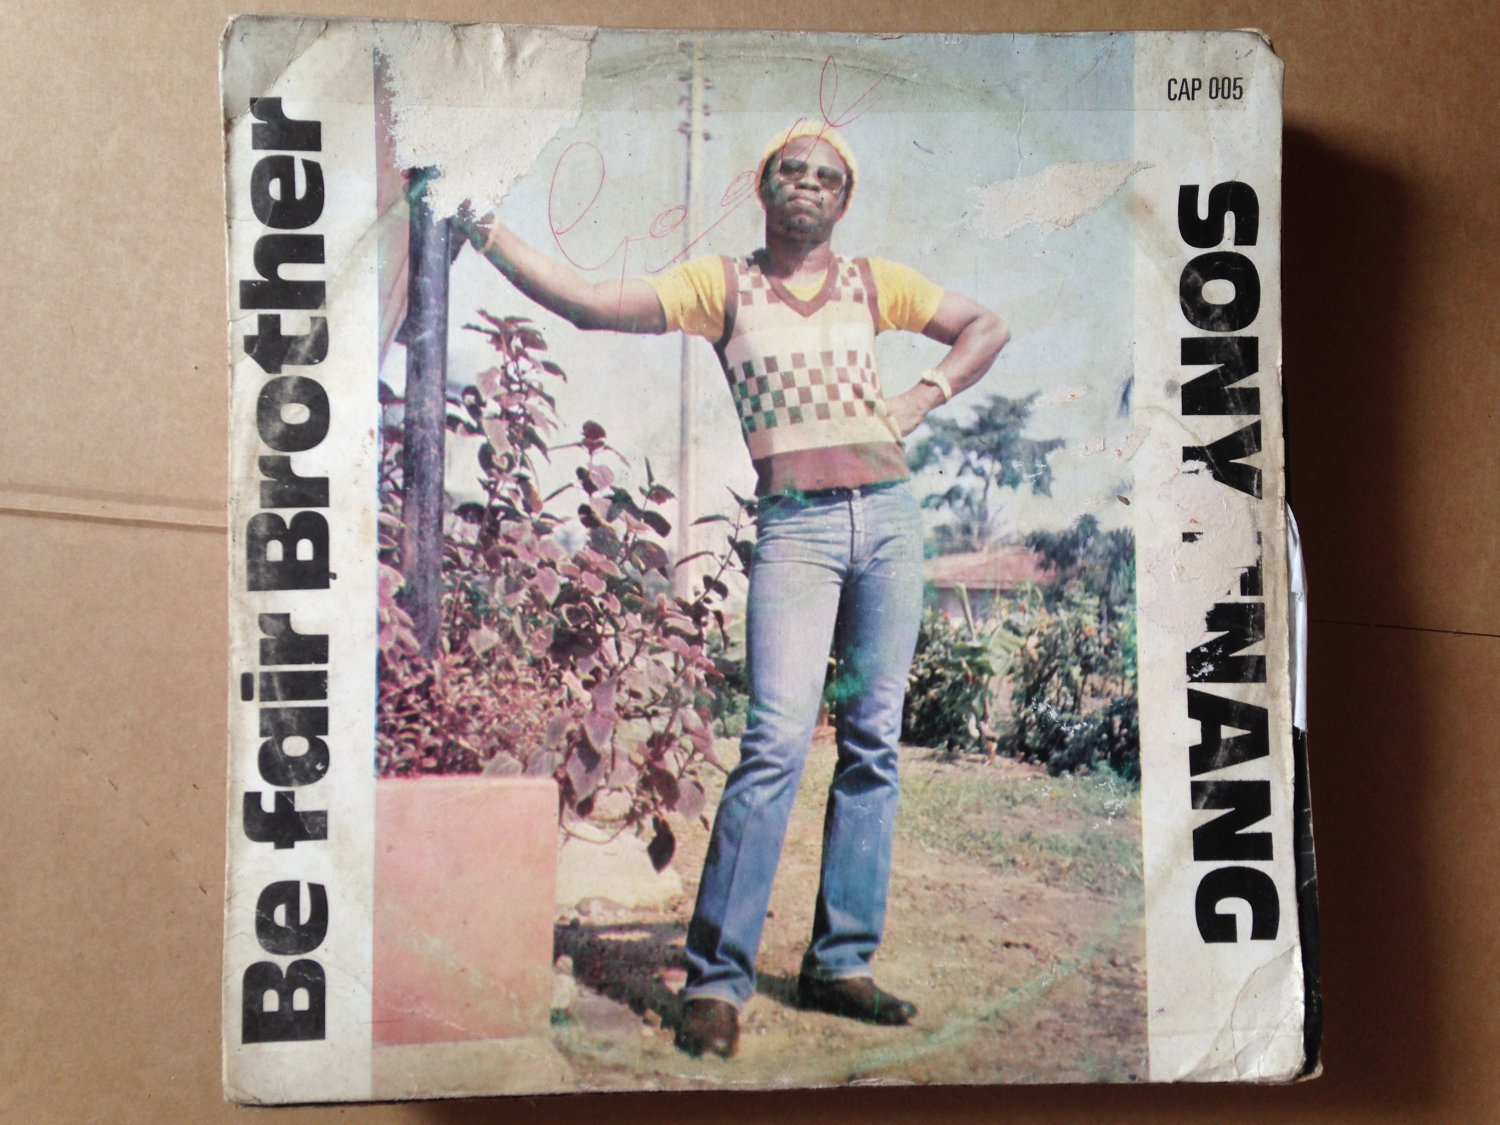 SONNY ENANG LP be fair brother AFRO REGGAE NIGERIA mp3 LISTEN